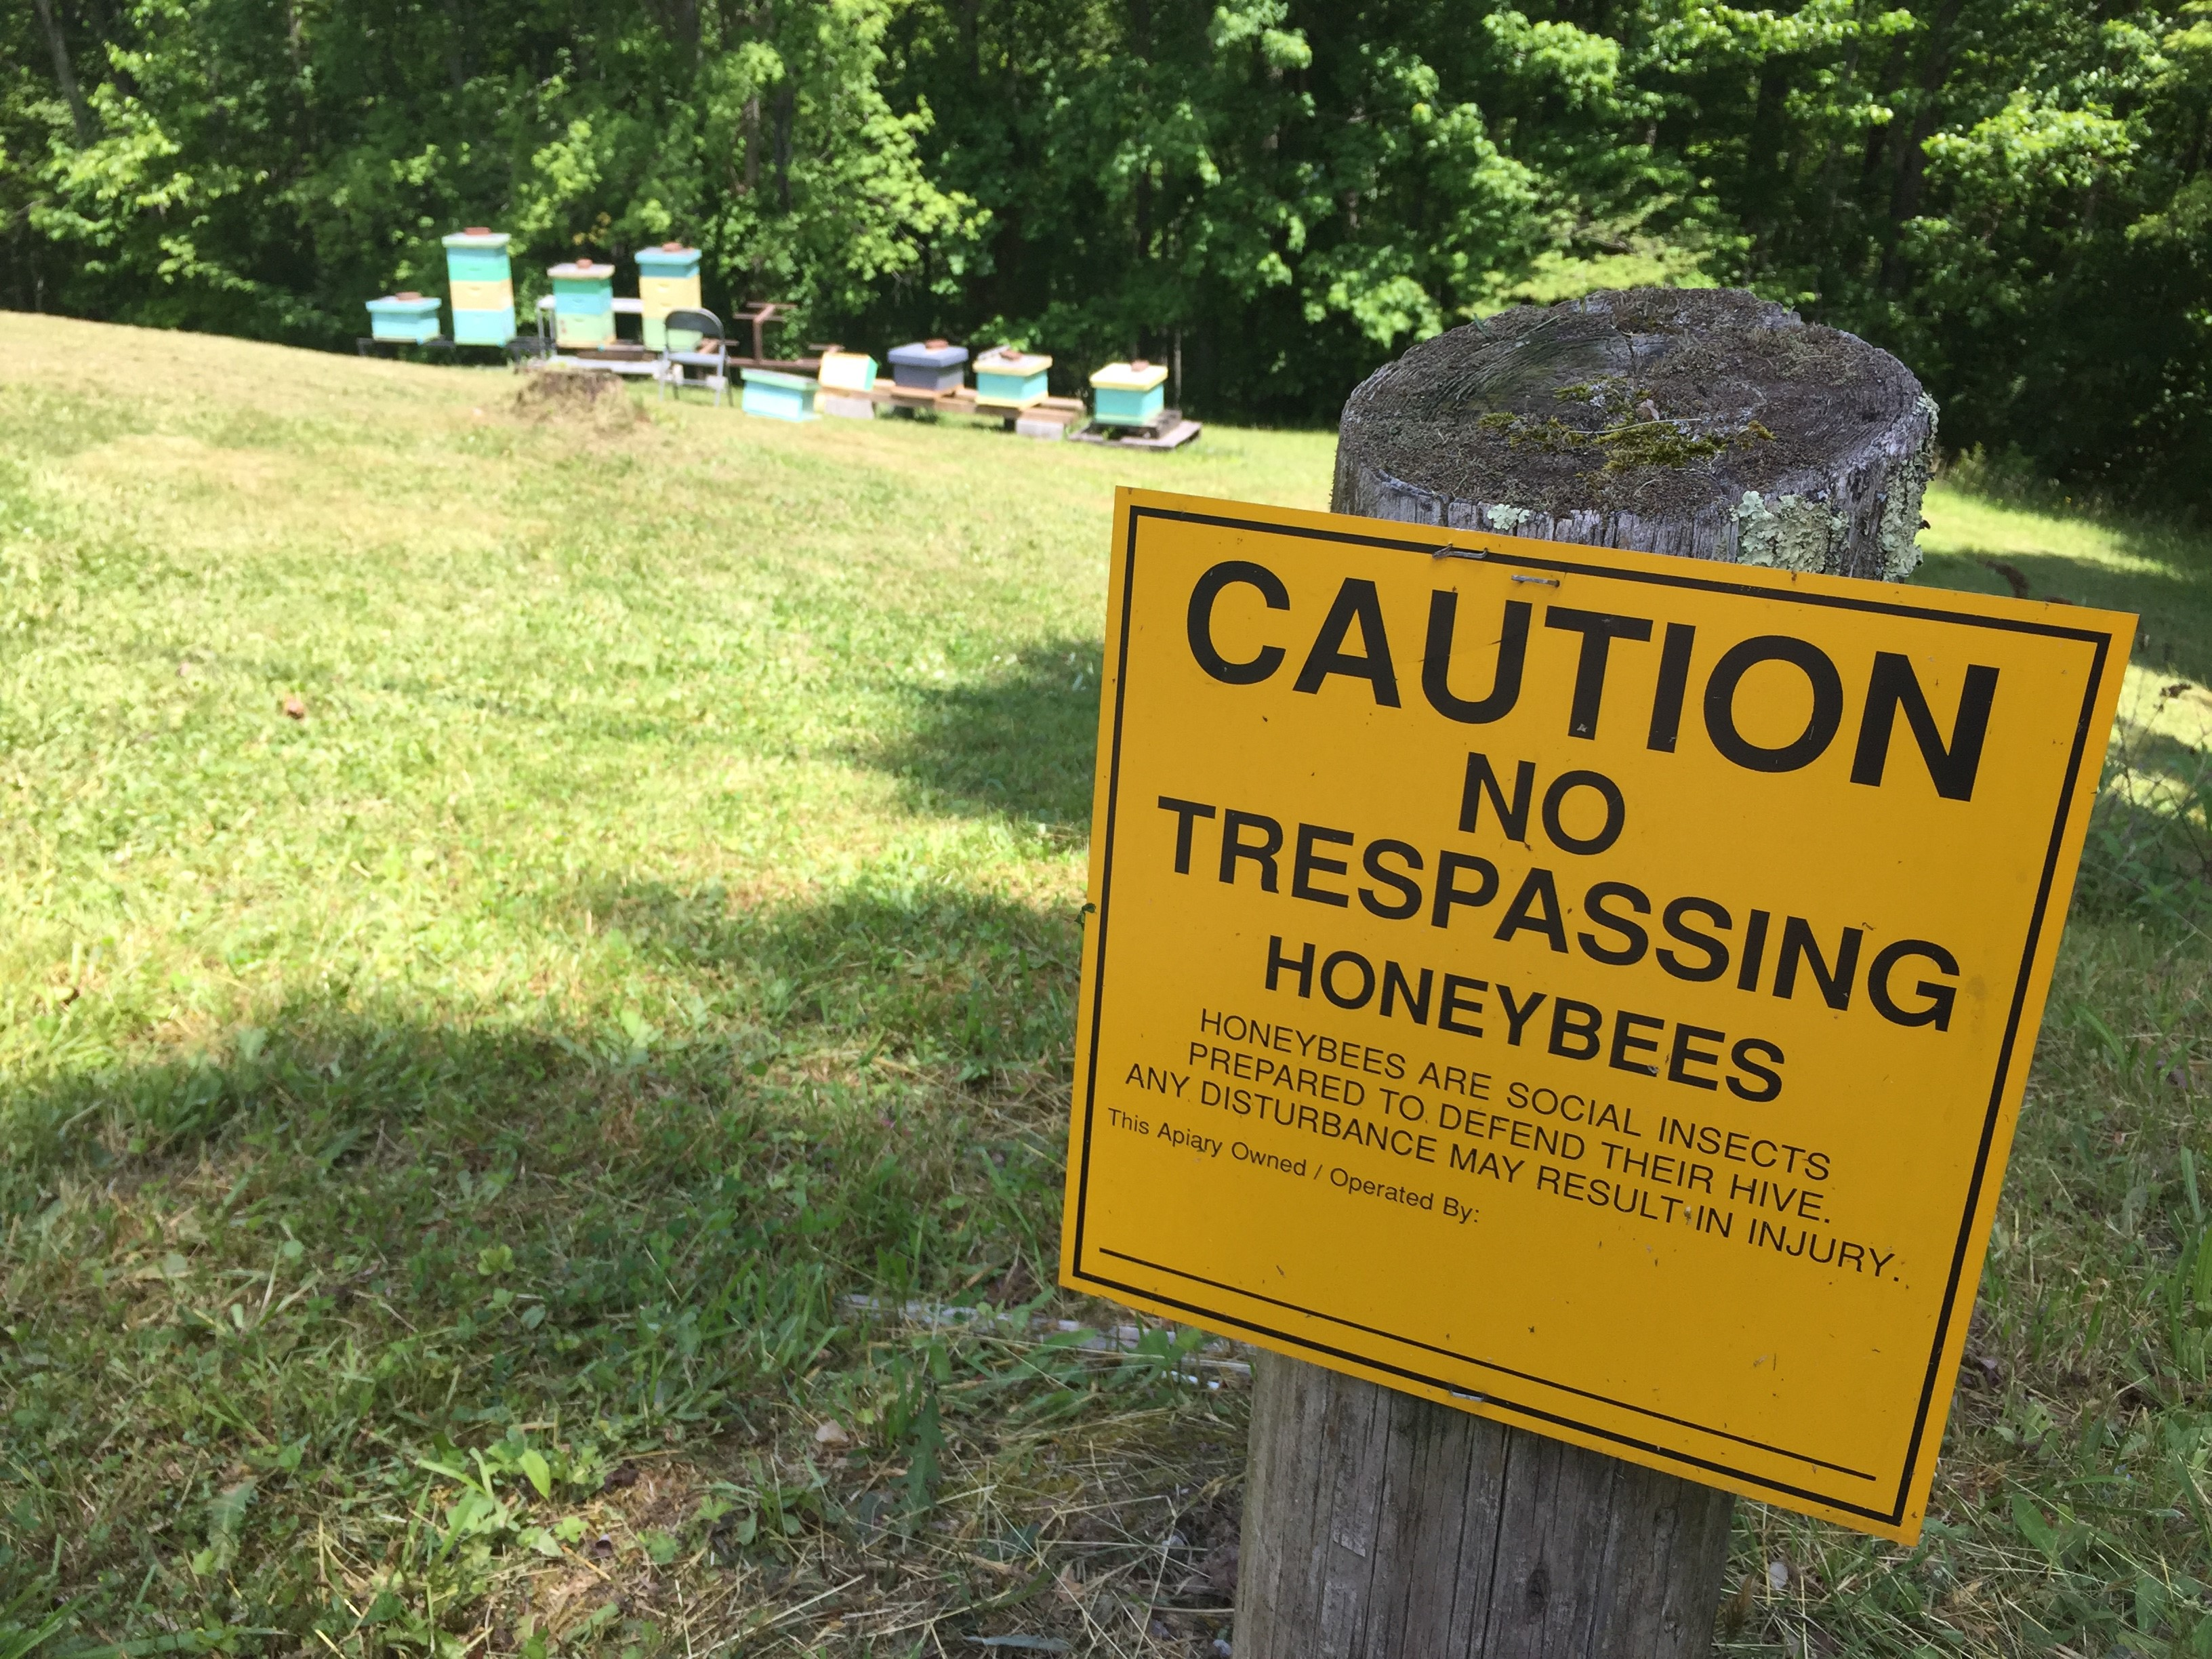 Beekeeping brings extra income to residents of West Virginia.